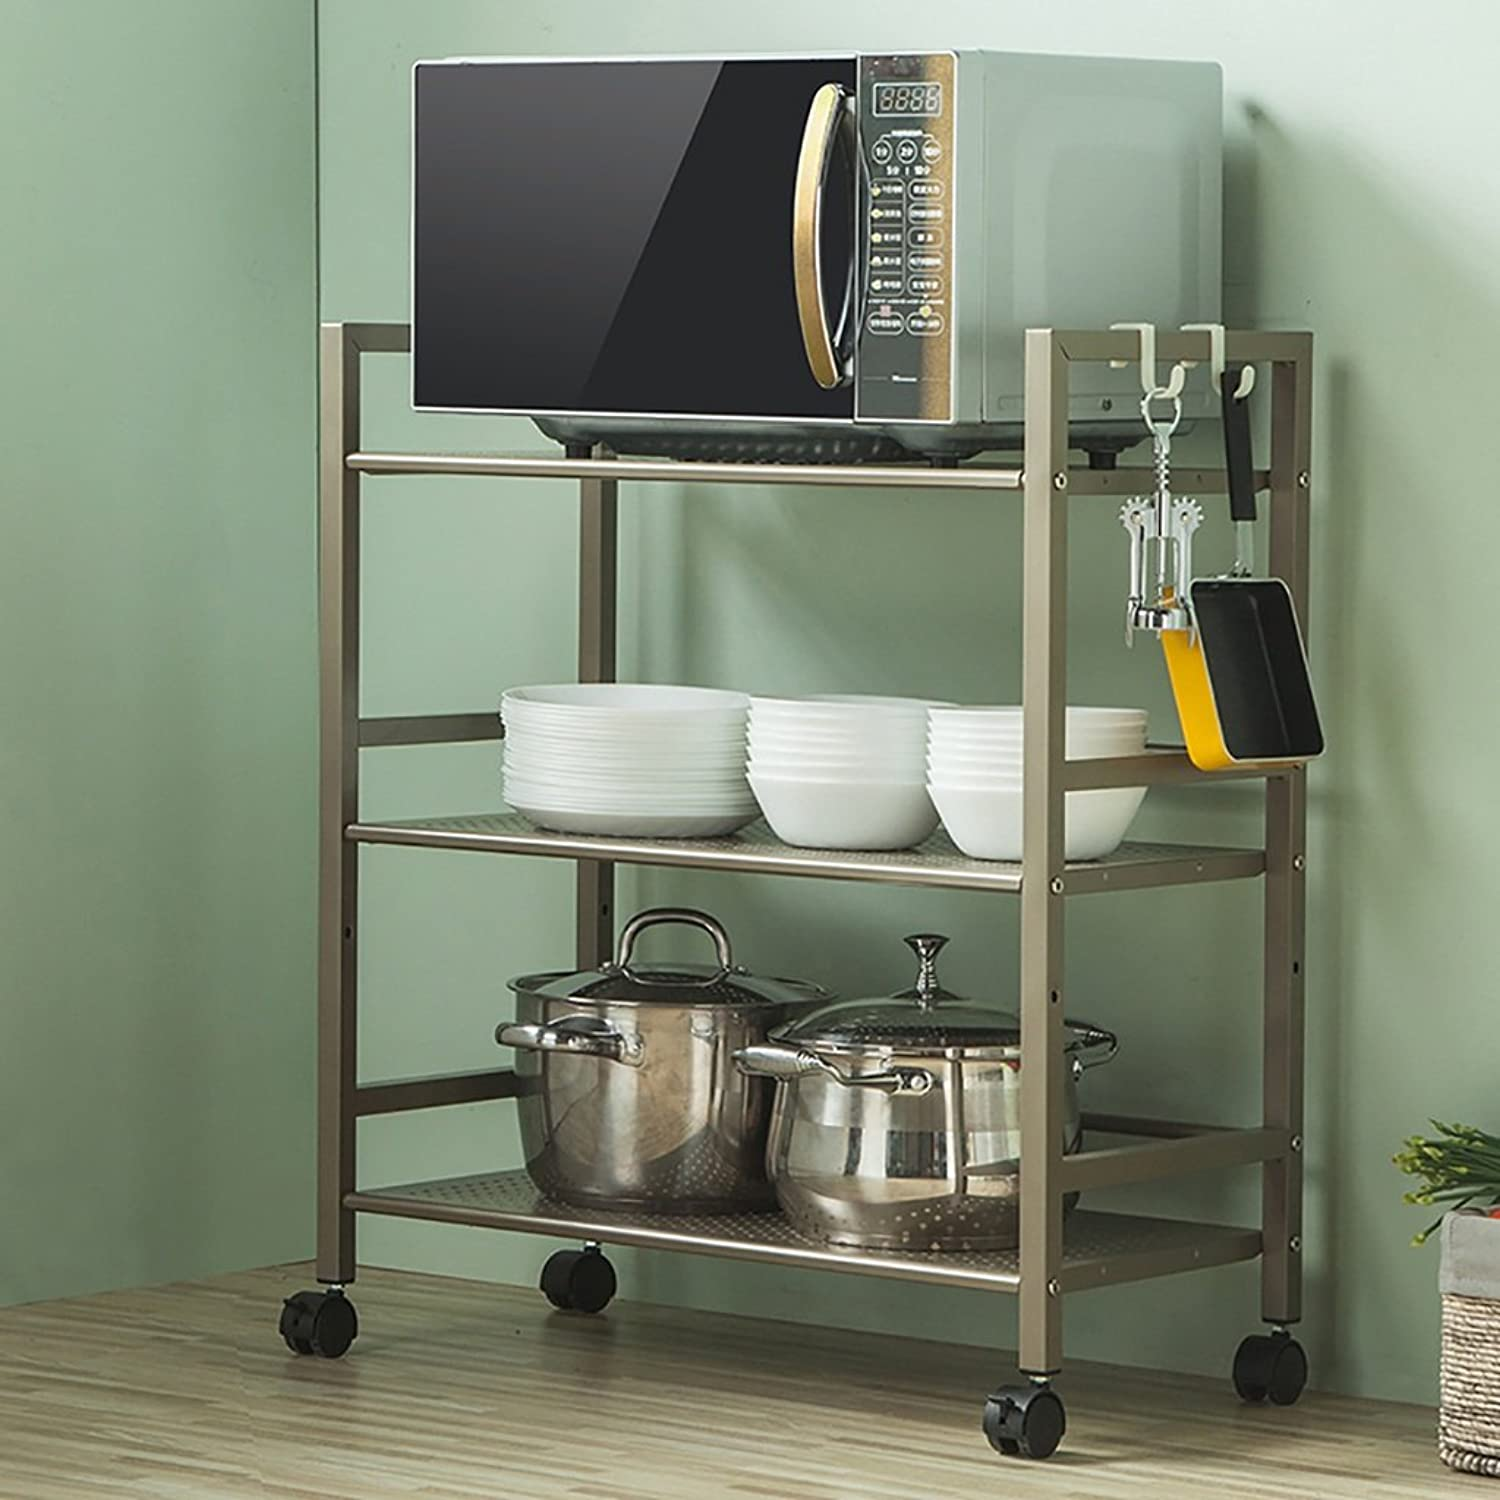 Kitchen Shelf All Purpose Shelving, Serving Trolley,Sturdy Rolling Cart, Mesh Storage Units,Suitable for Kitchen Kitchen Storage Racks (color   Champagne gold)